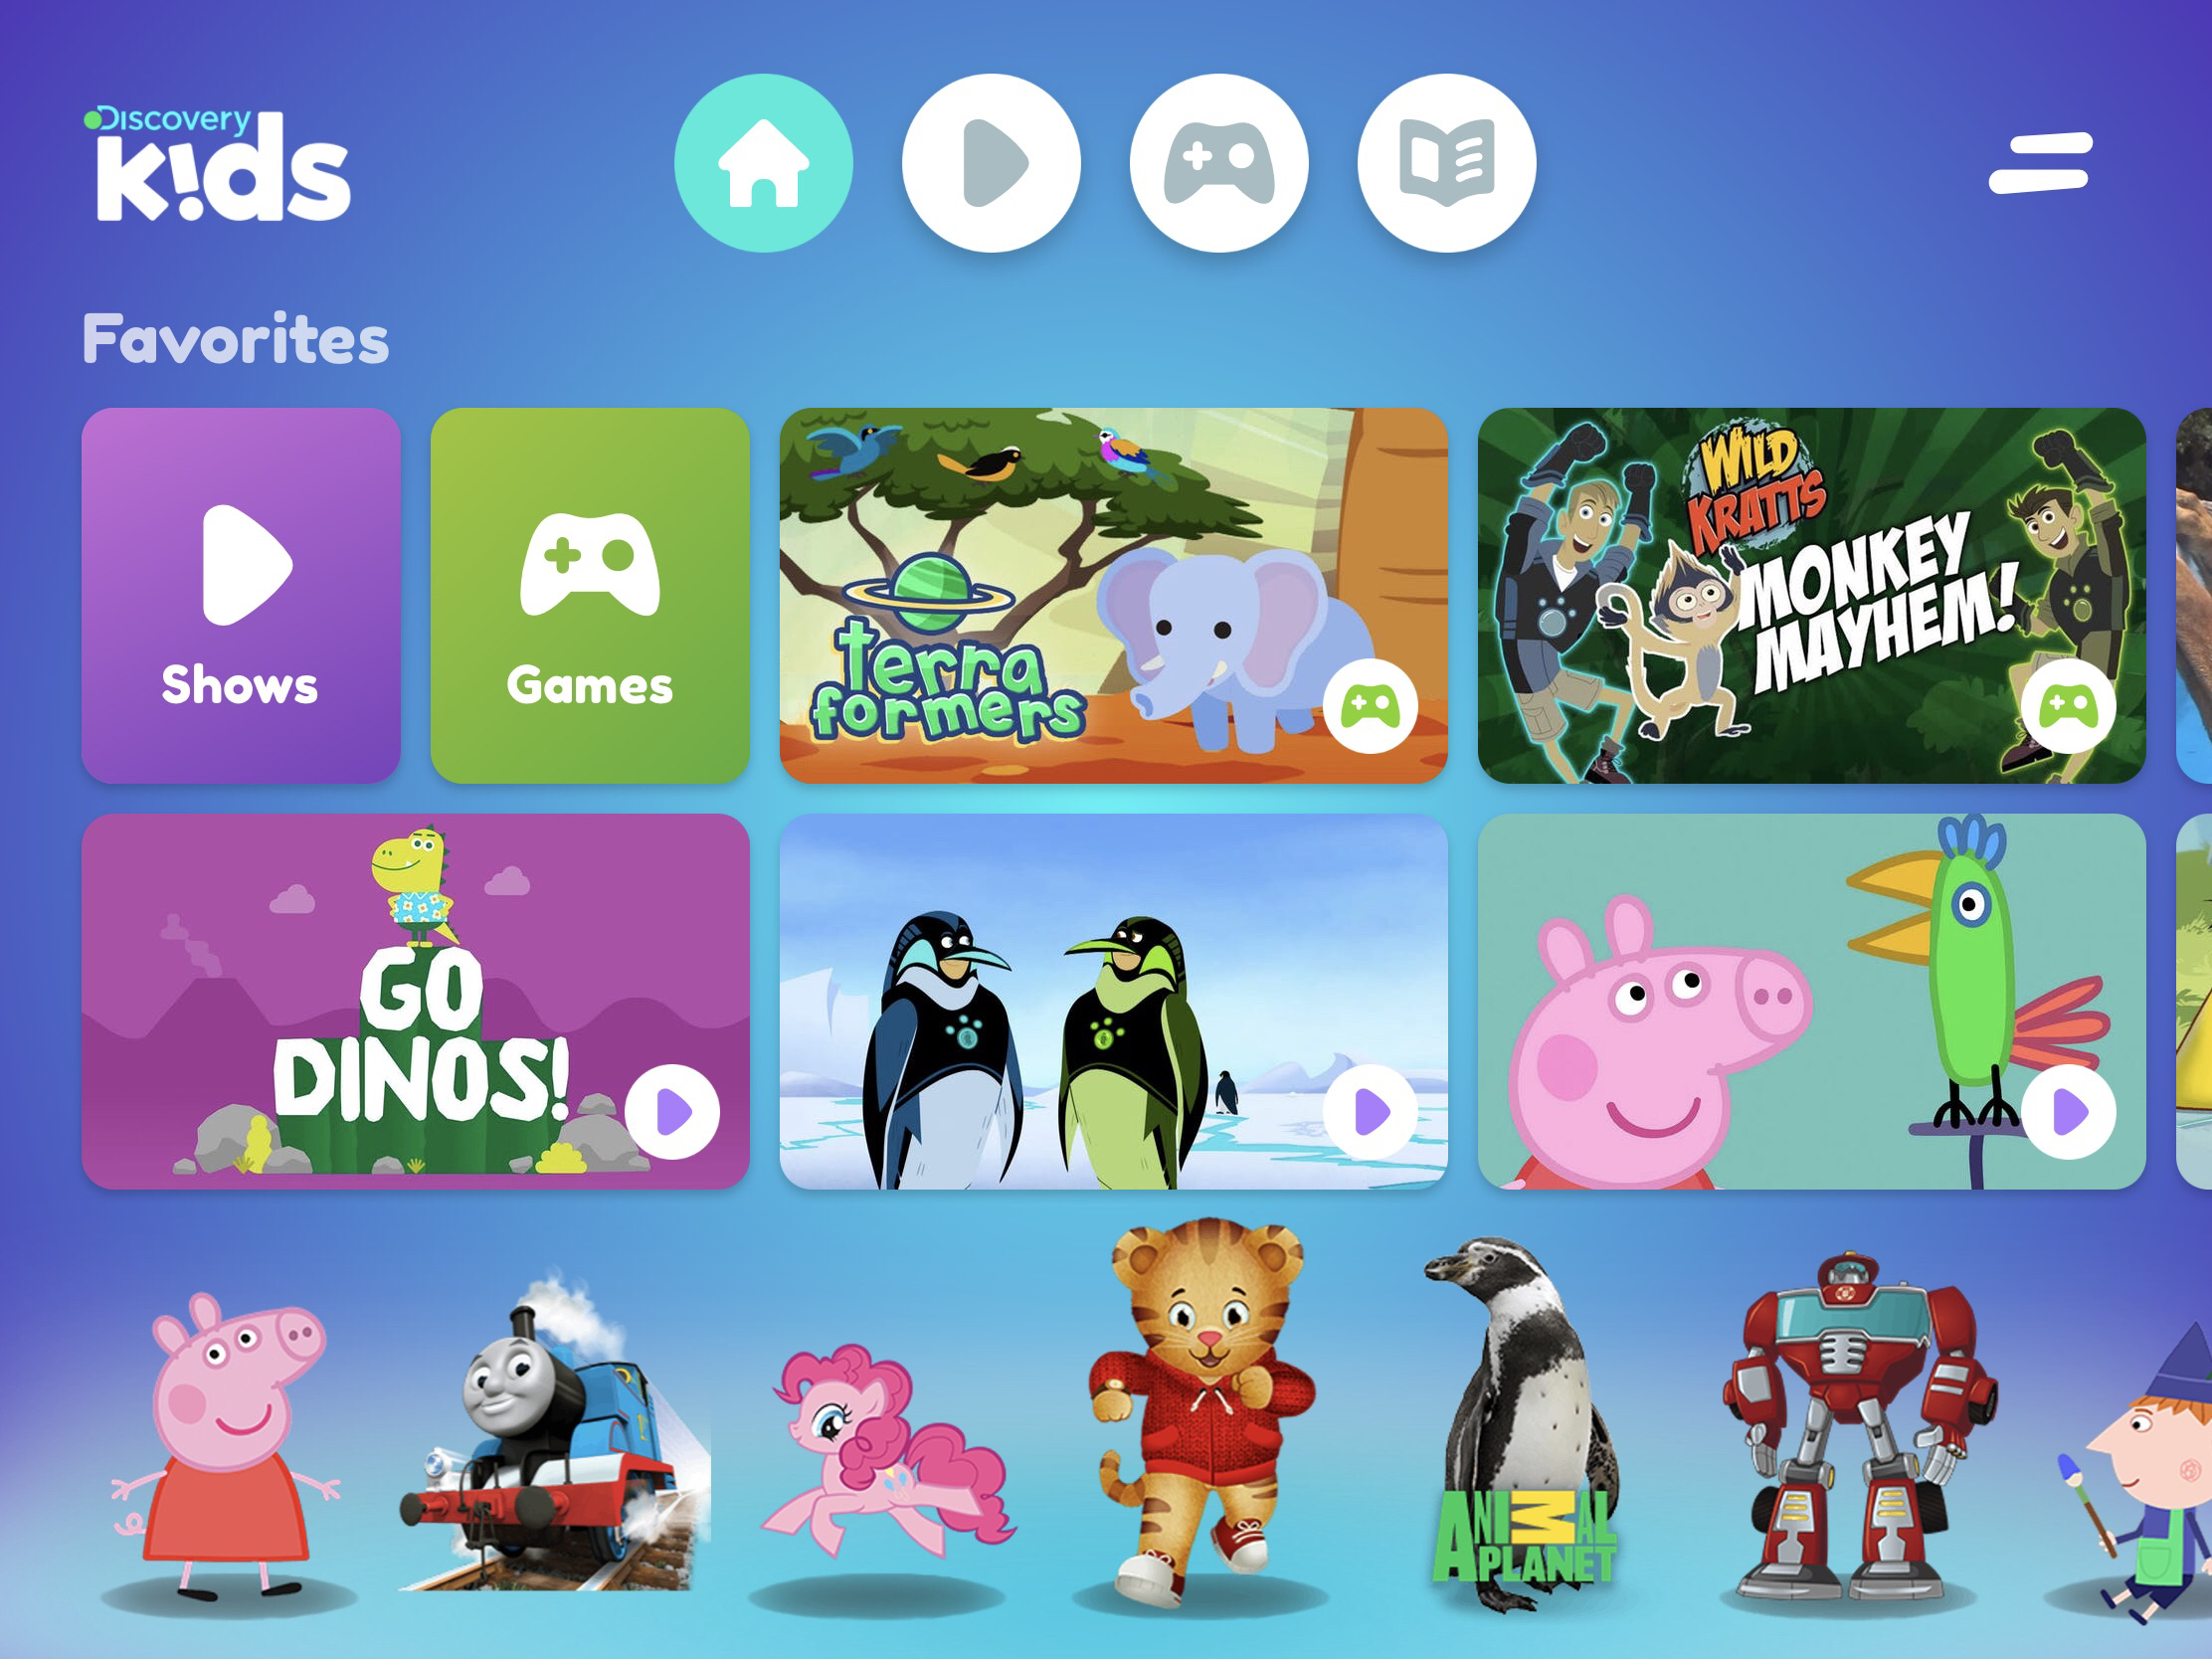 Discovery Kids app officially launches in the Philippines